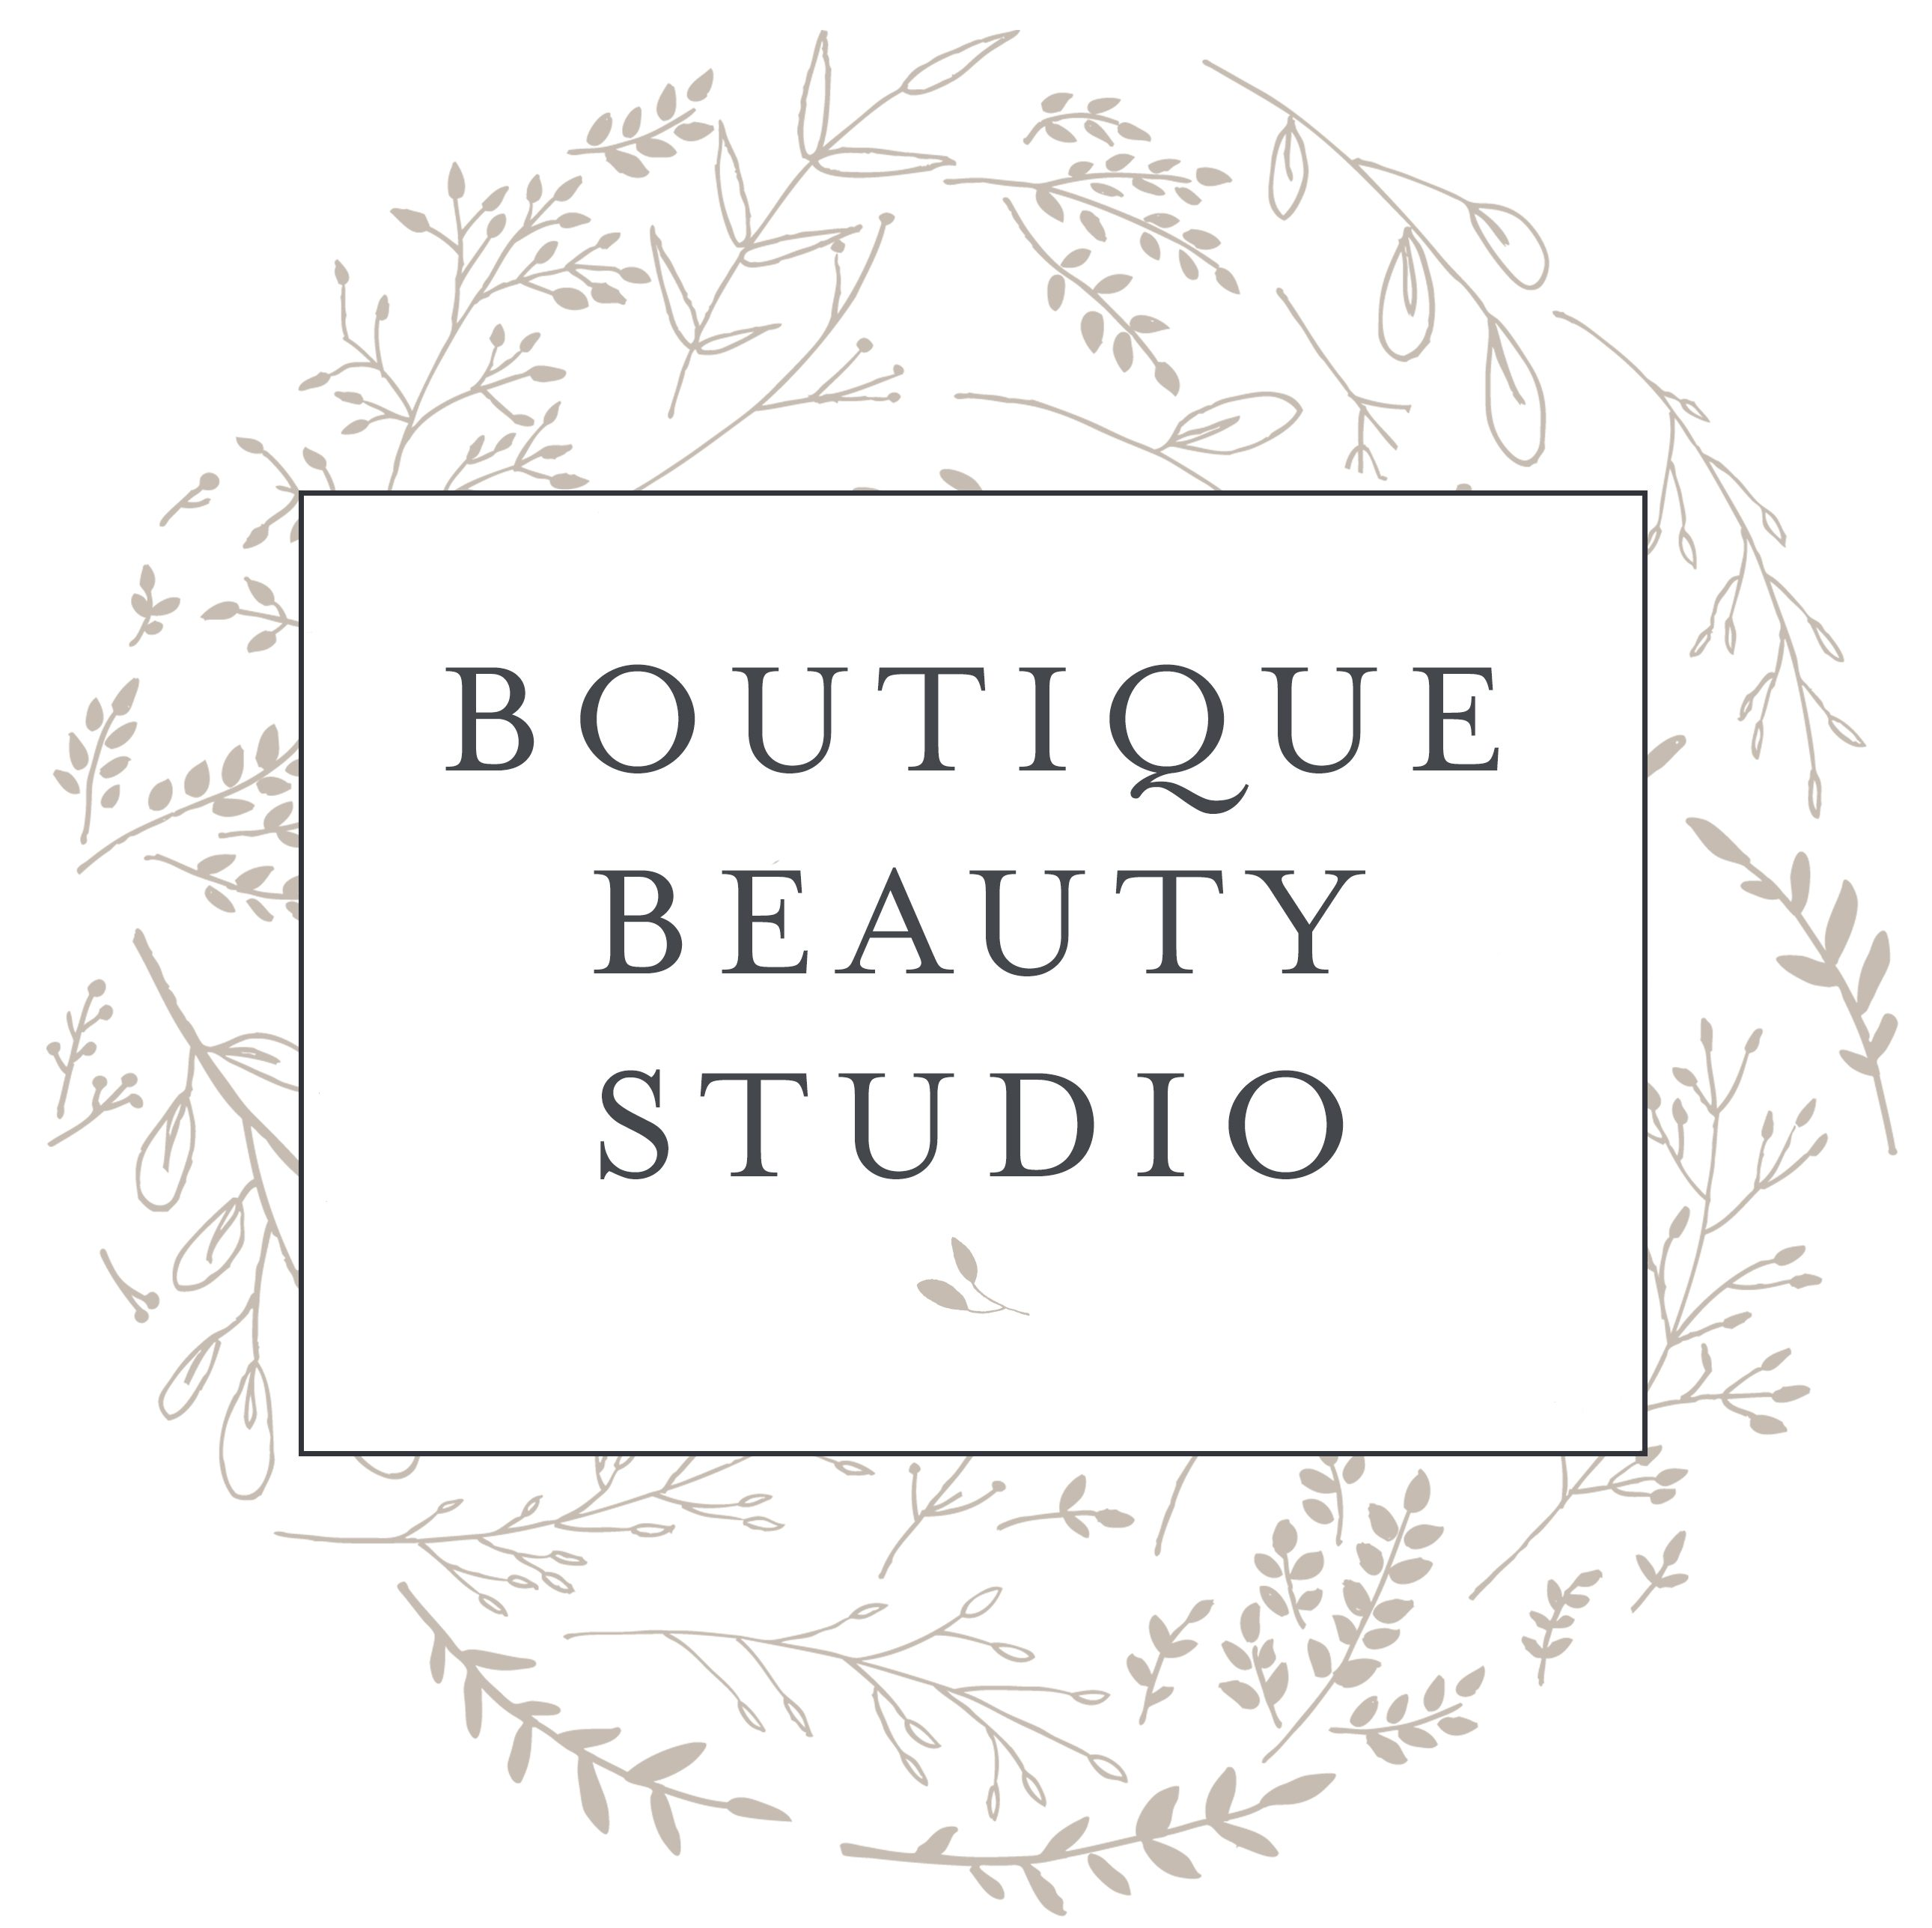 Boutique Beauty Studio